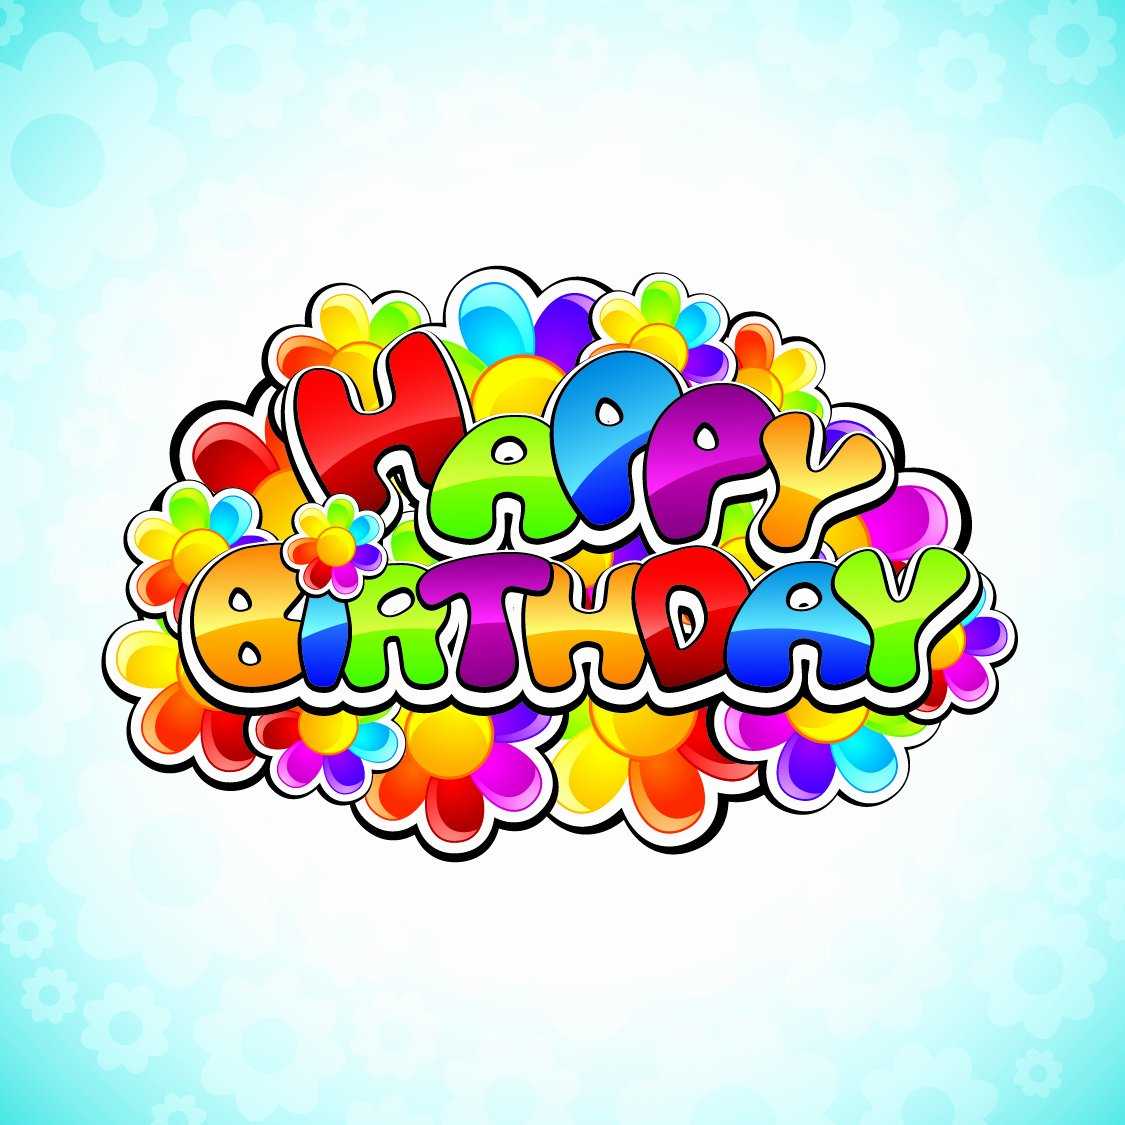 Free Downloads Happy Birthday Images Beautiful Free Happy Birthday Cartoon Download Free Clip Art